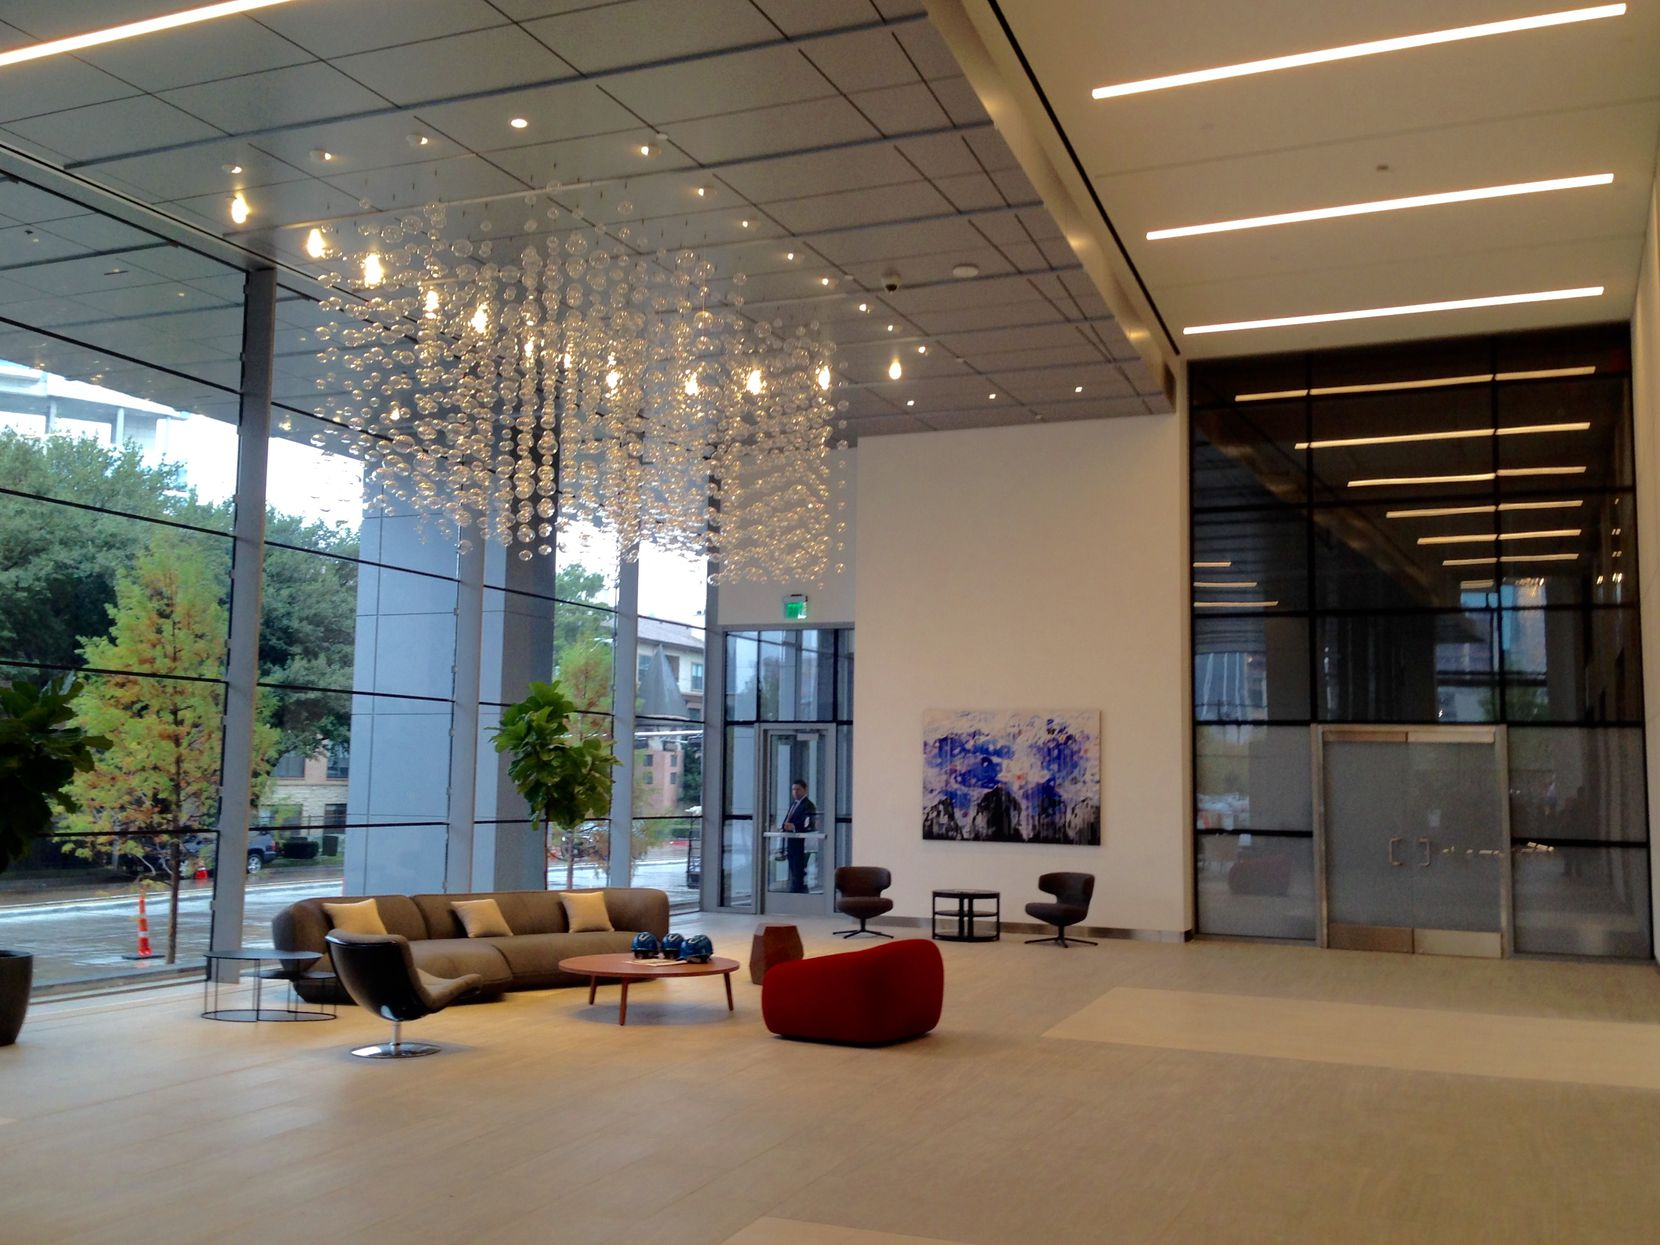 The new Union office tower in Dallas' Uptown district is more than 90 percent leased.